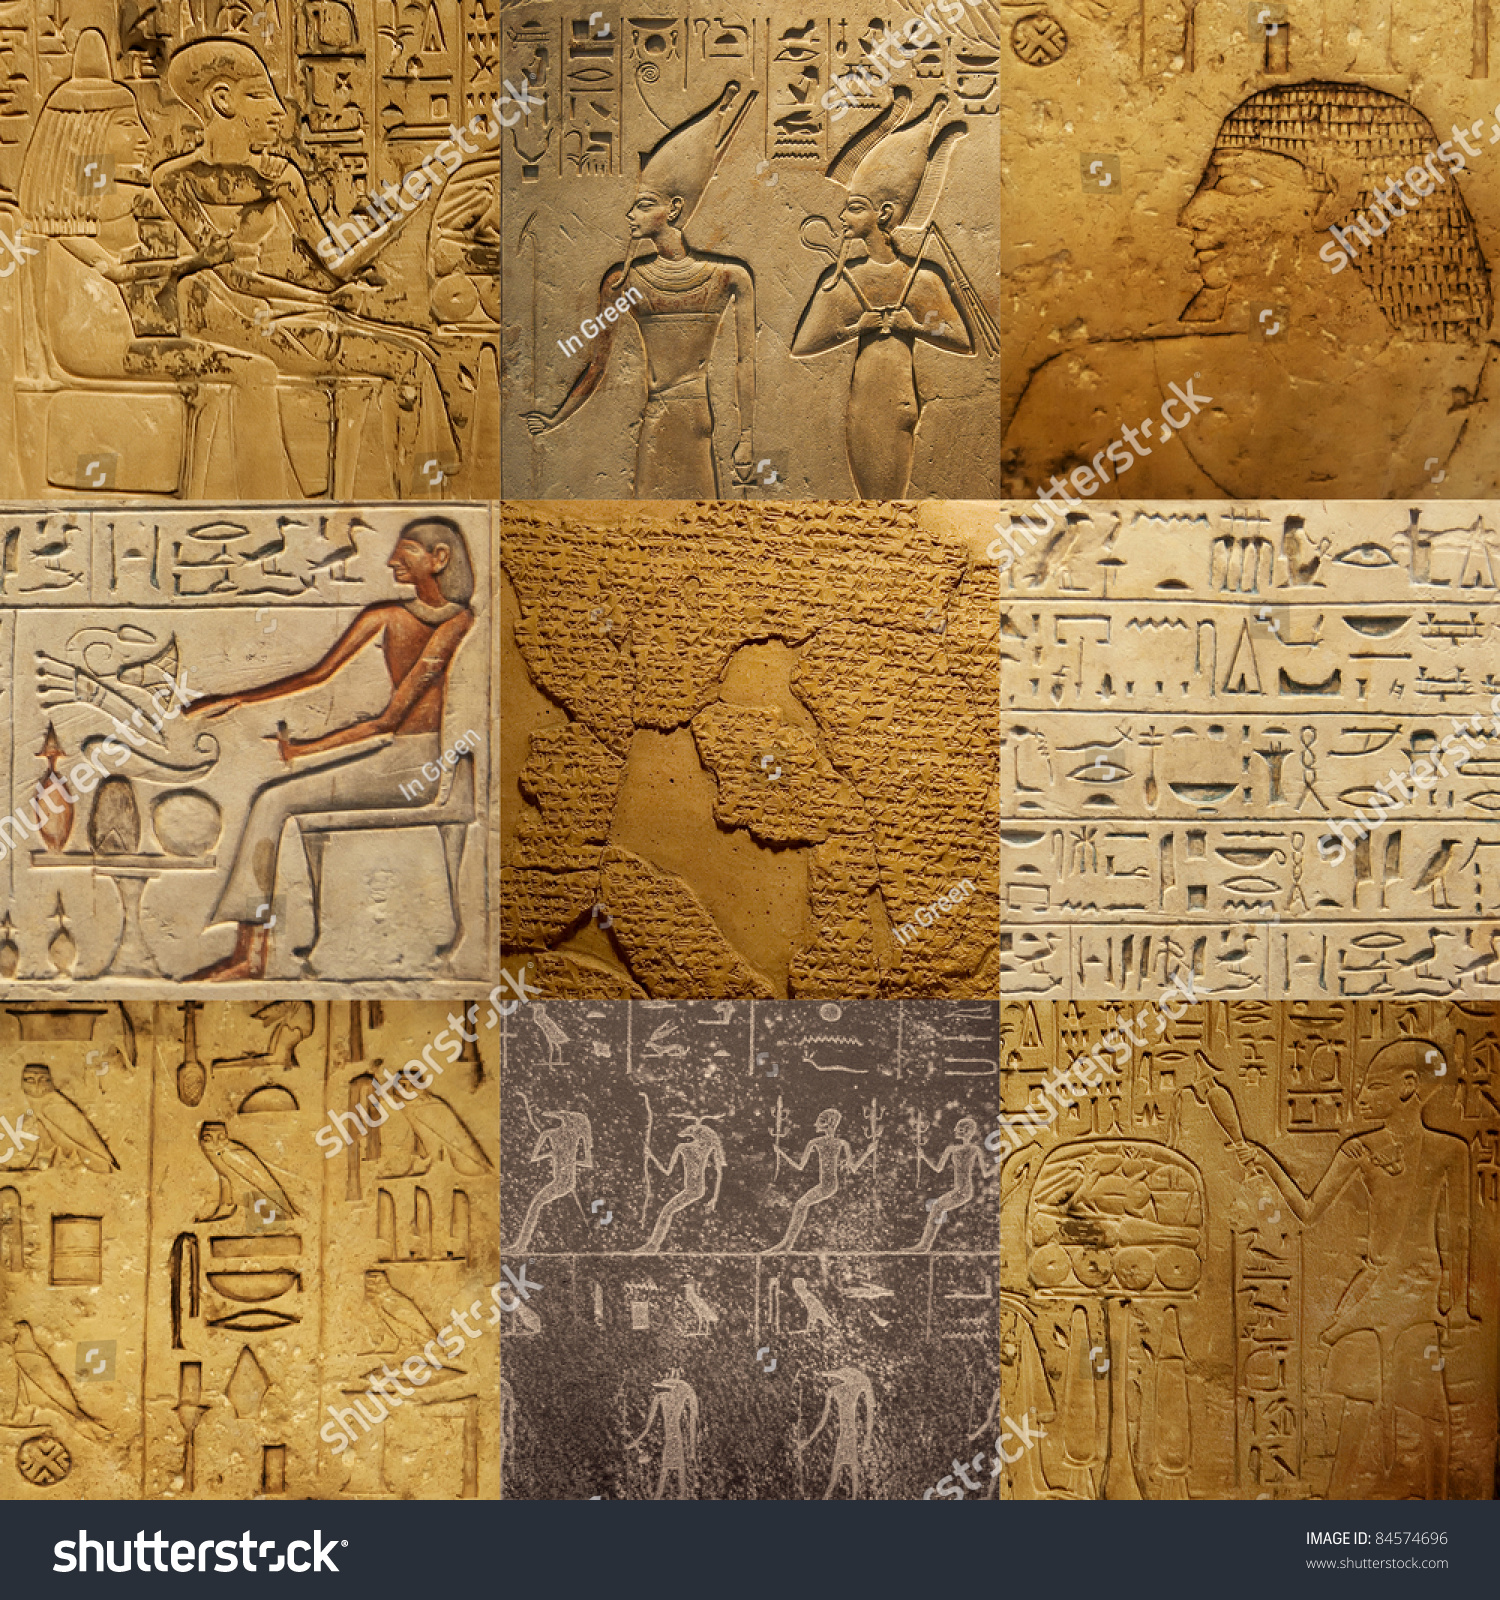 art architecture ancient egypt essay Ancient egypt and egyptian art essay and after life in egyptian art the ancient egyptians one of the most amazing ancient cultures, egyptians are famous for their unique ideas, beliefs, innovation and their architecture of the pyramids.